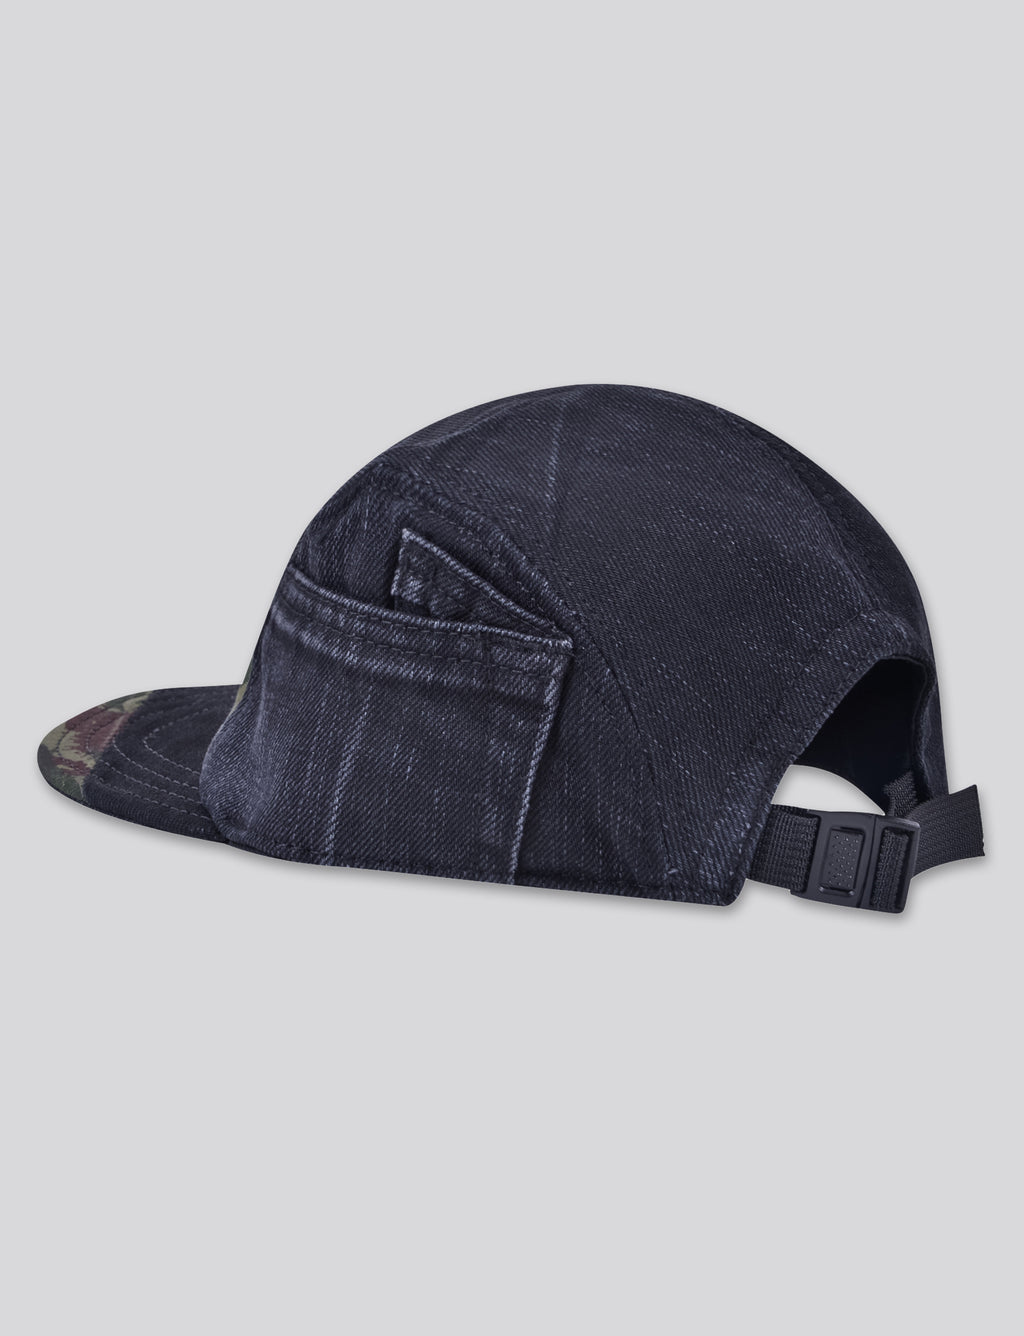 Prps - #1 Black Denim/Camo 5 Panel Hat - Hat - Prps